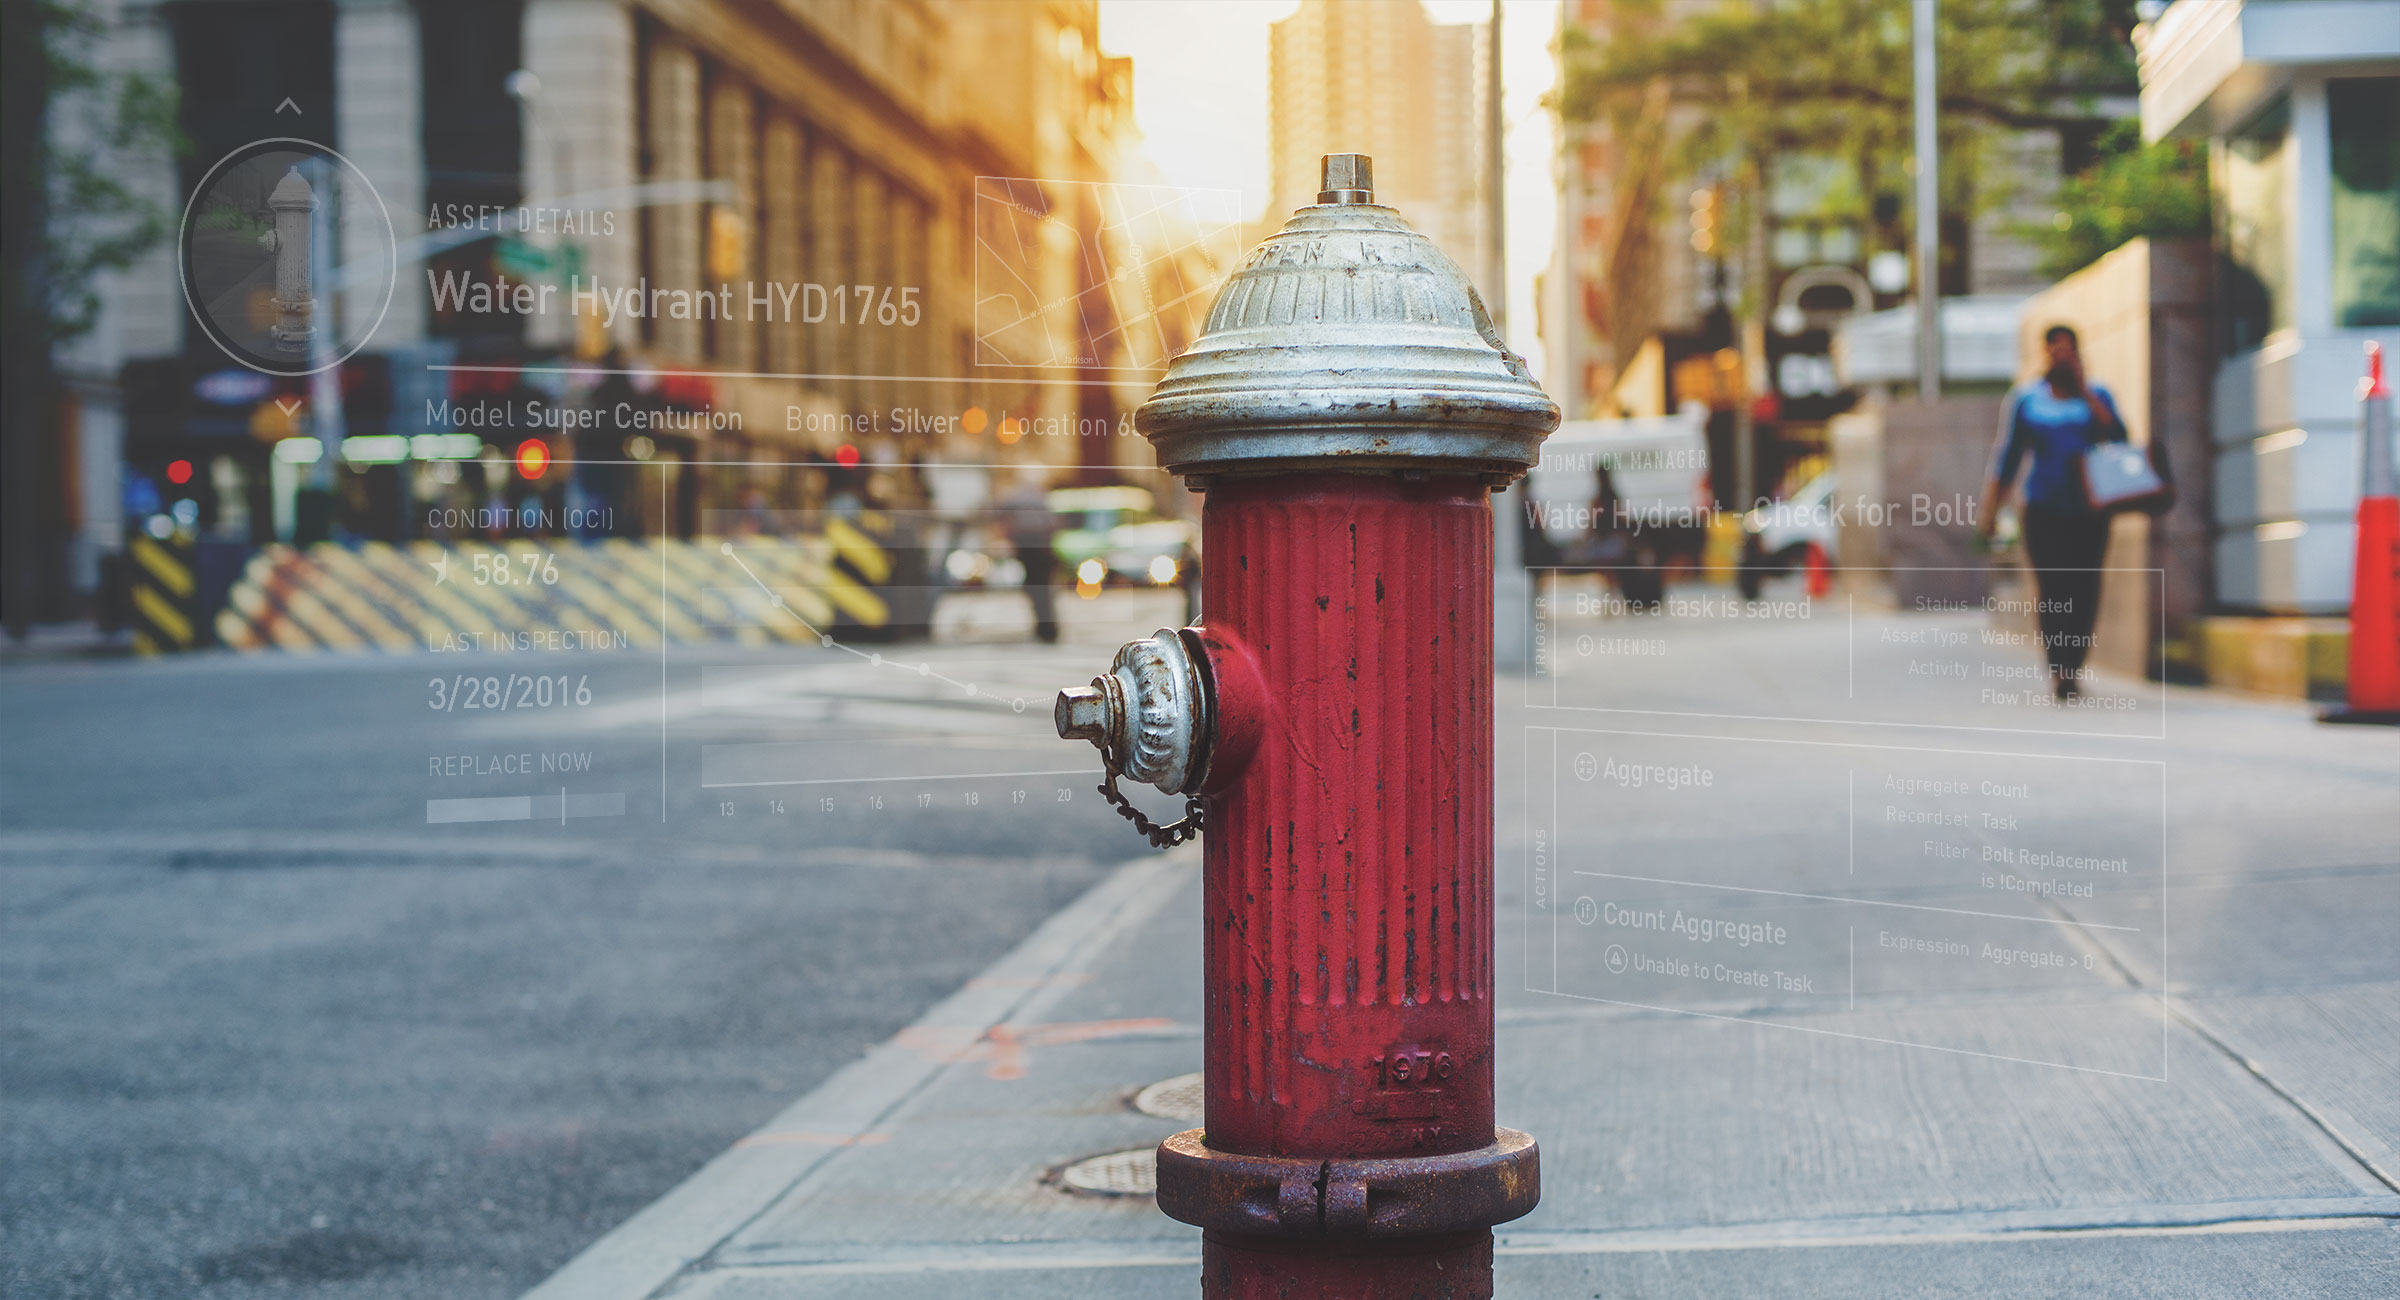 Hydrant with Cartegraph UI